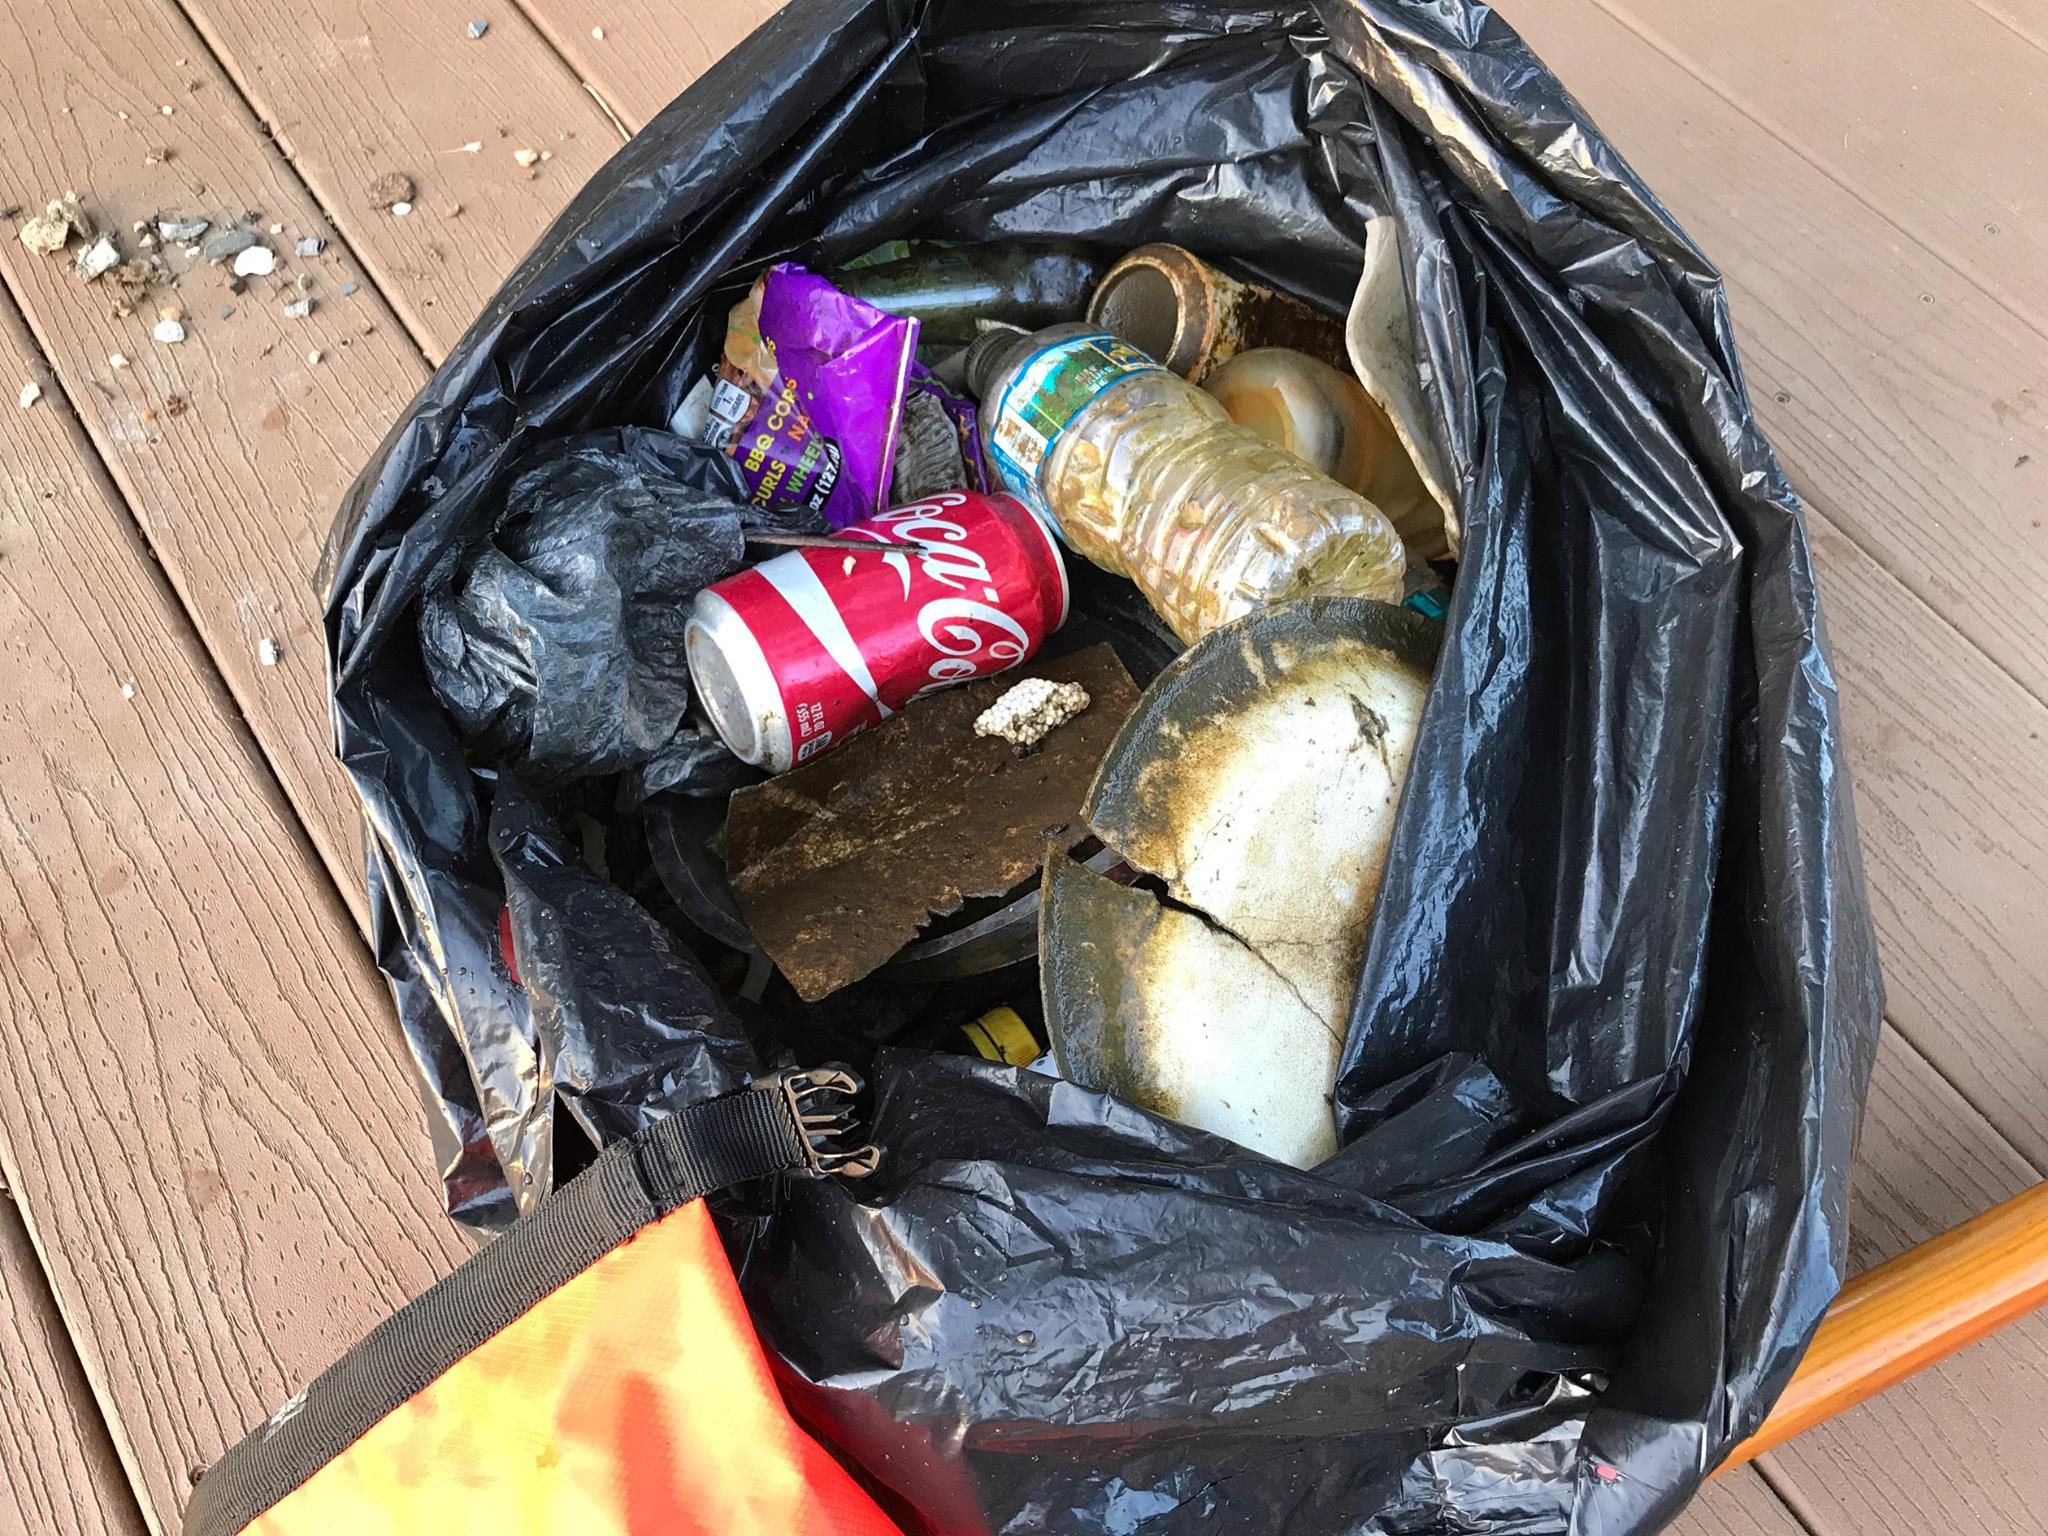 Any paddler who takes a garbage bag along will find plastic bottles, plates, straws, and wrappers, every time.